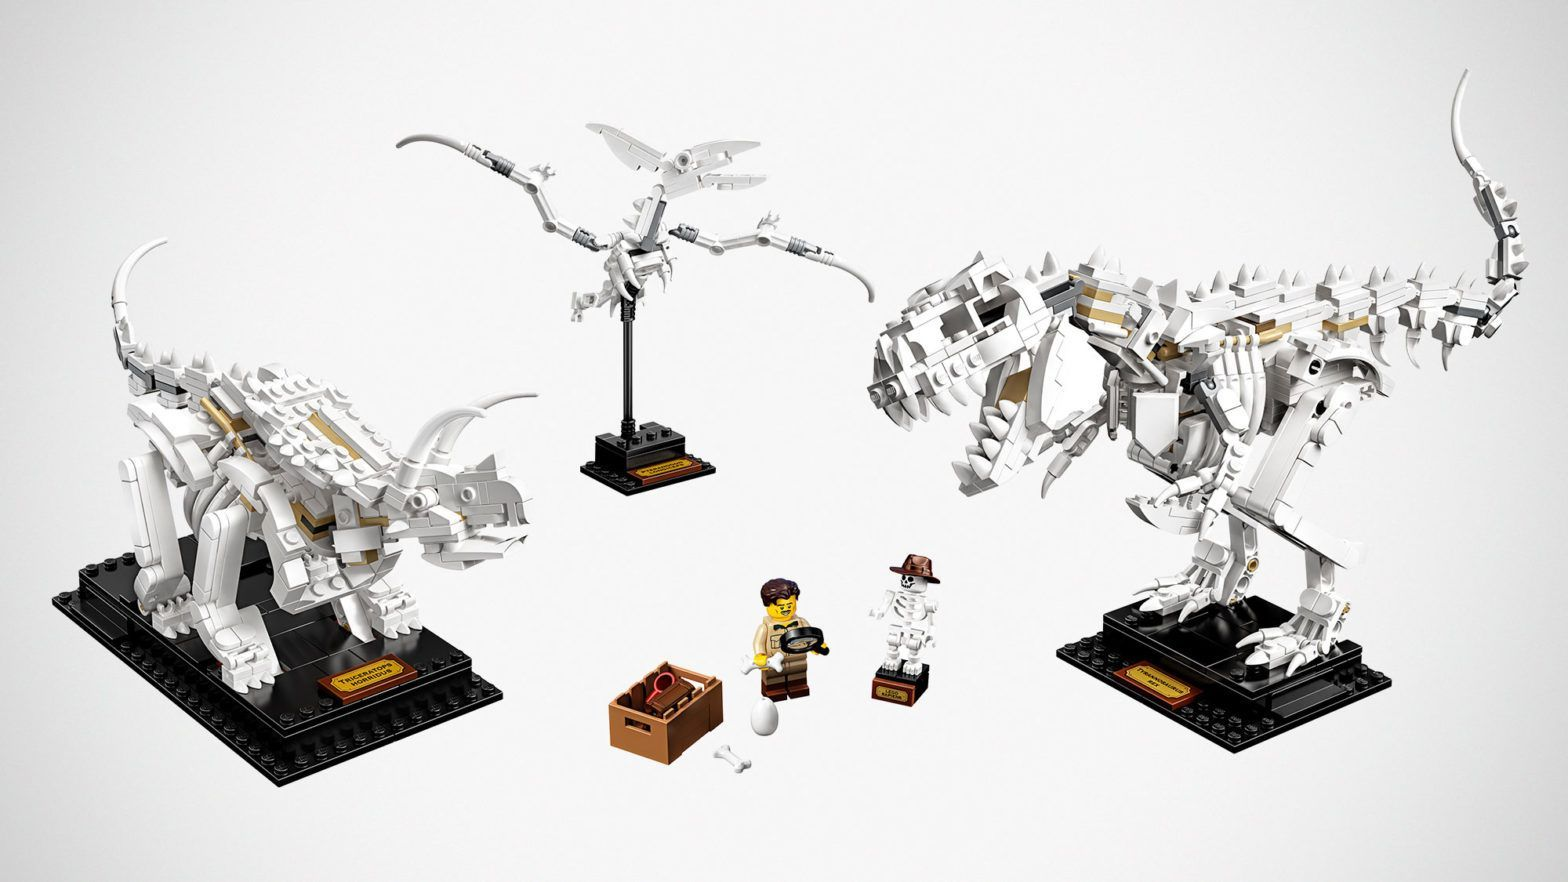 LEGO Ideas Dinosaur Fossils Packs Three Dinosaurs, Shovel Not Required #historyofdinosaurs LEGO Ideas Dinosaur Fossils Packs Three Dinosaurs, Shovel Not Required #historyofdinosaurs